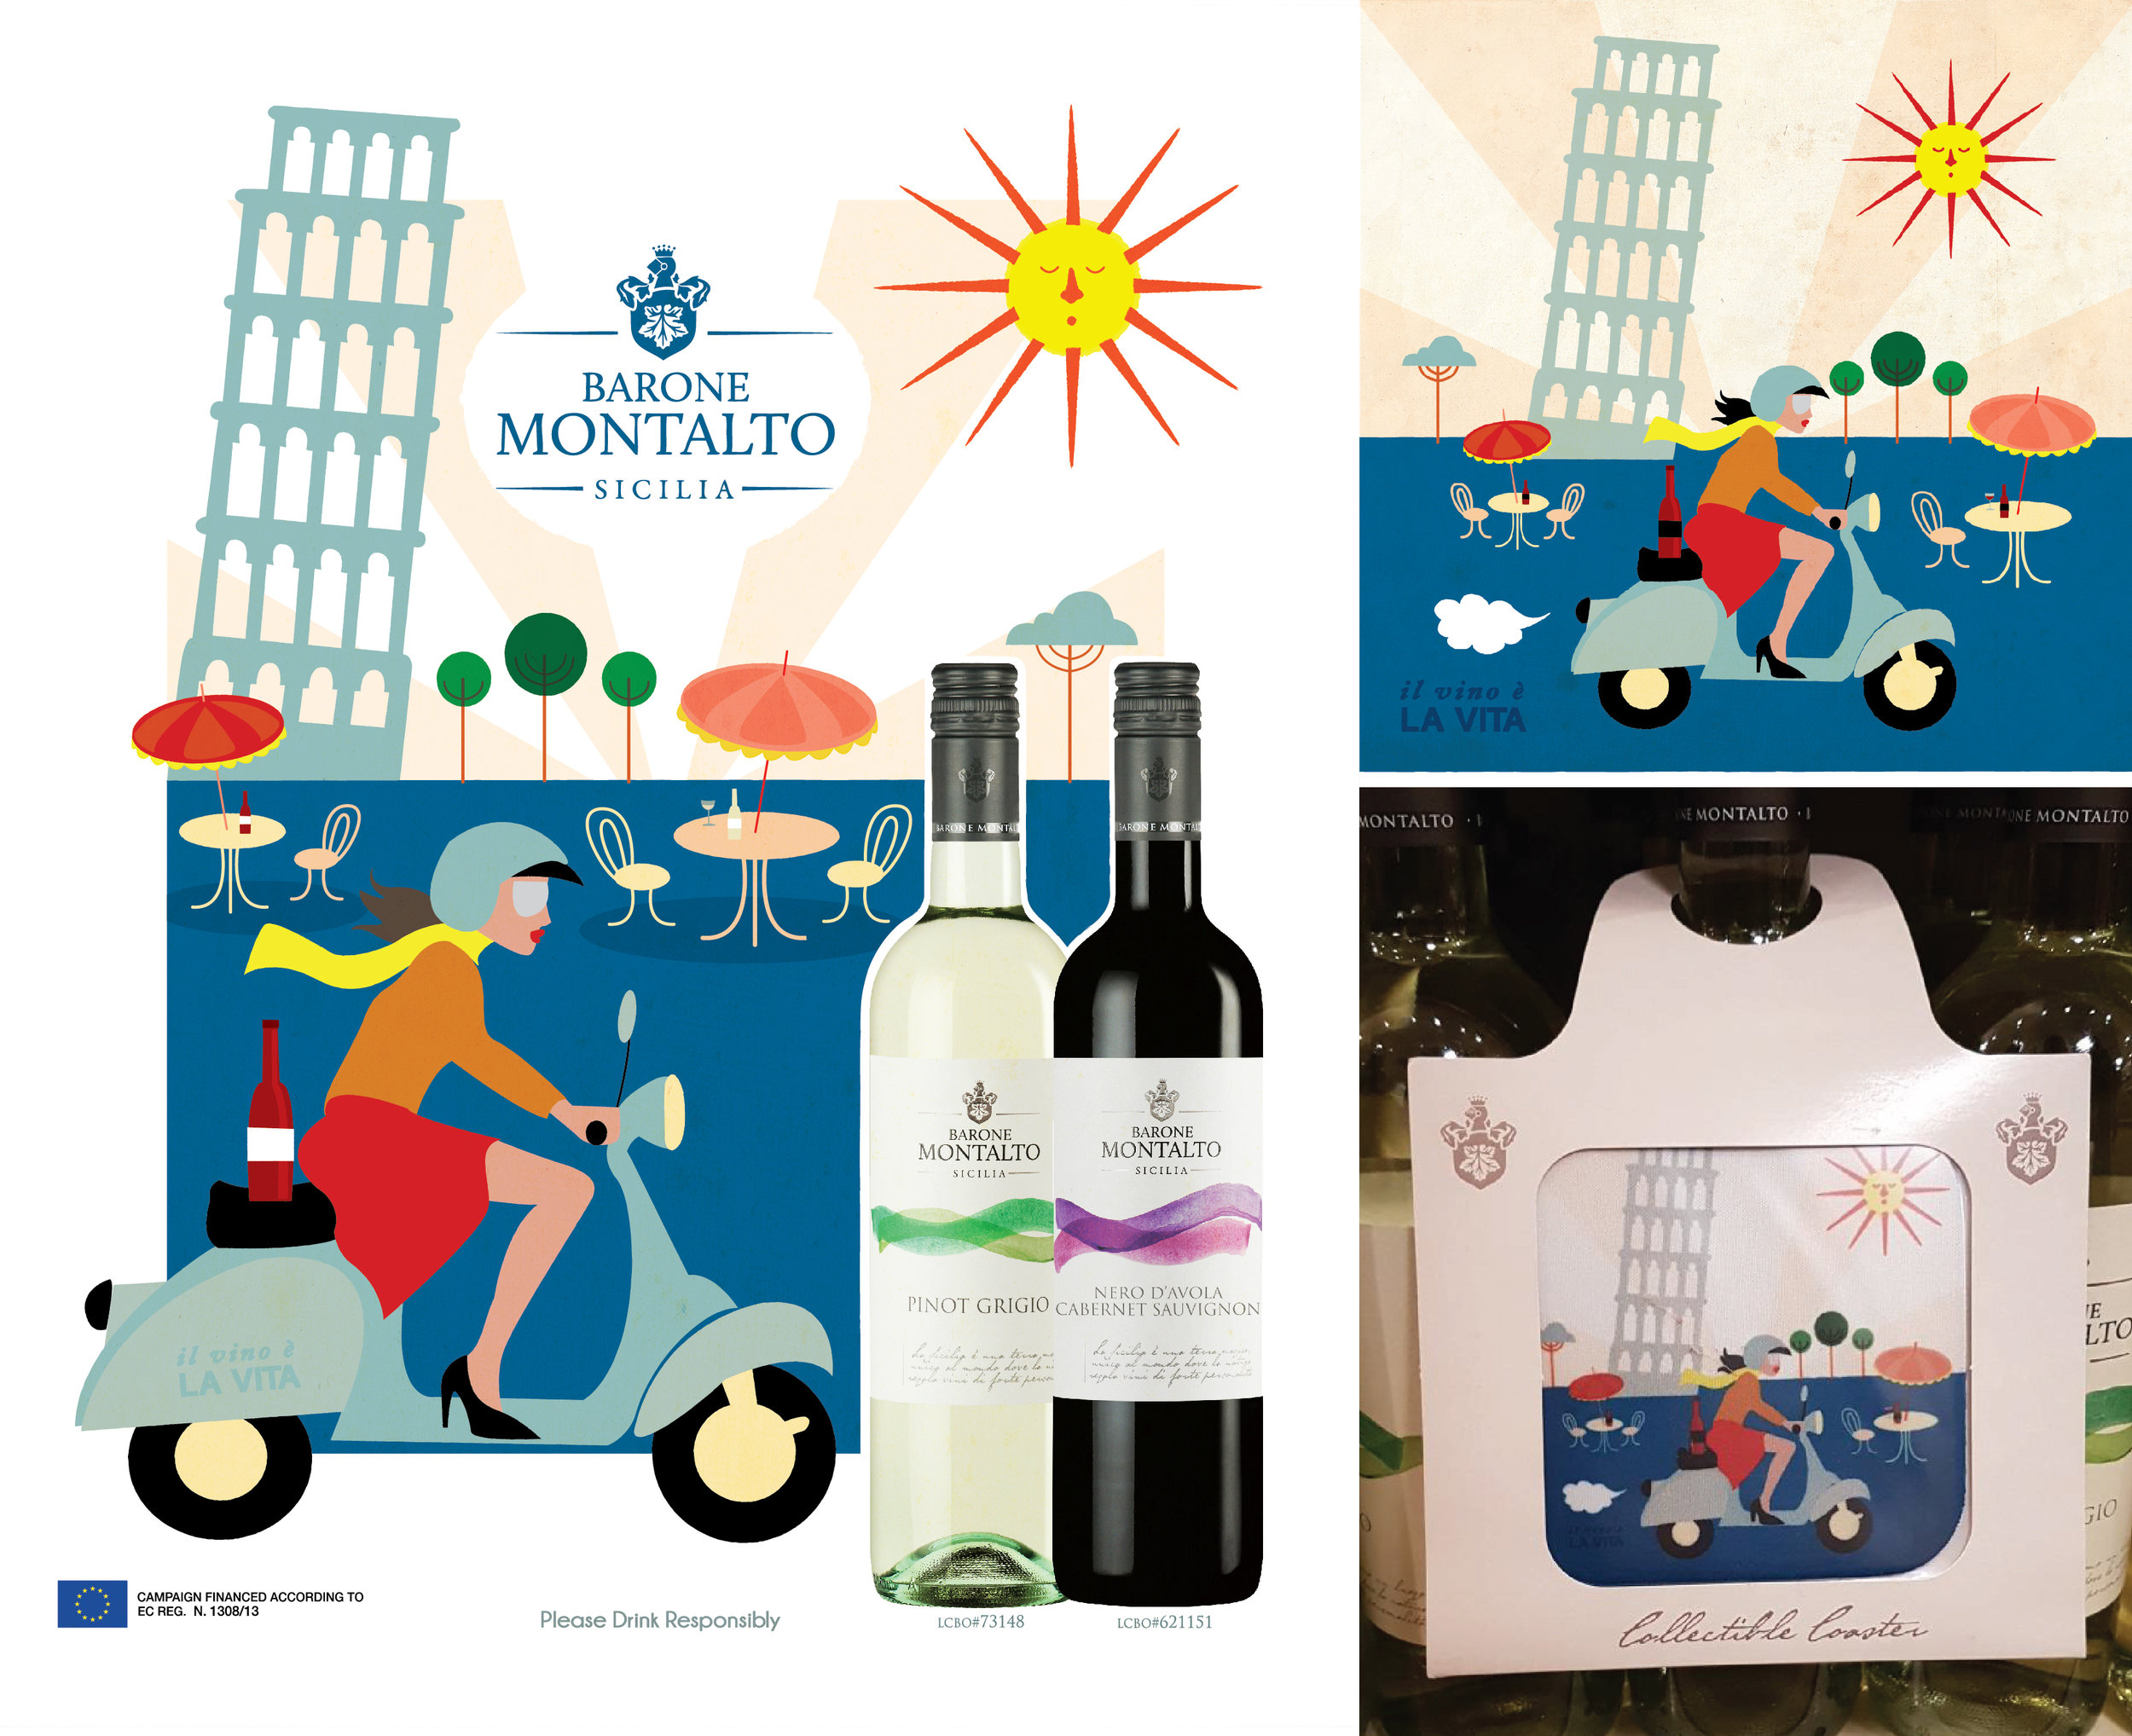 Barone Montalto Advertisements and Coasters